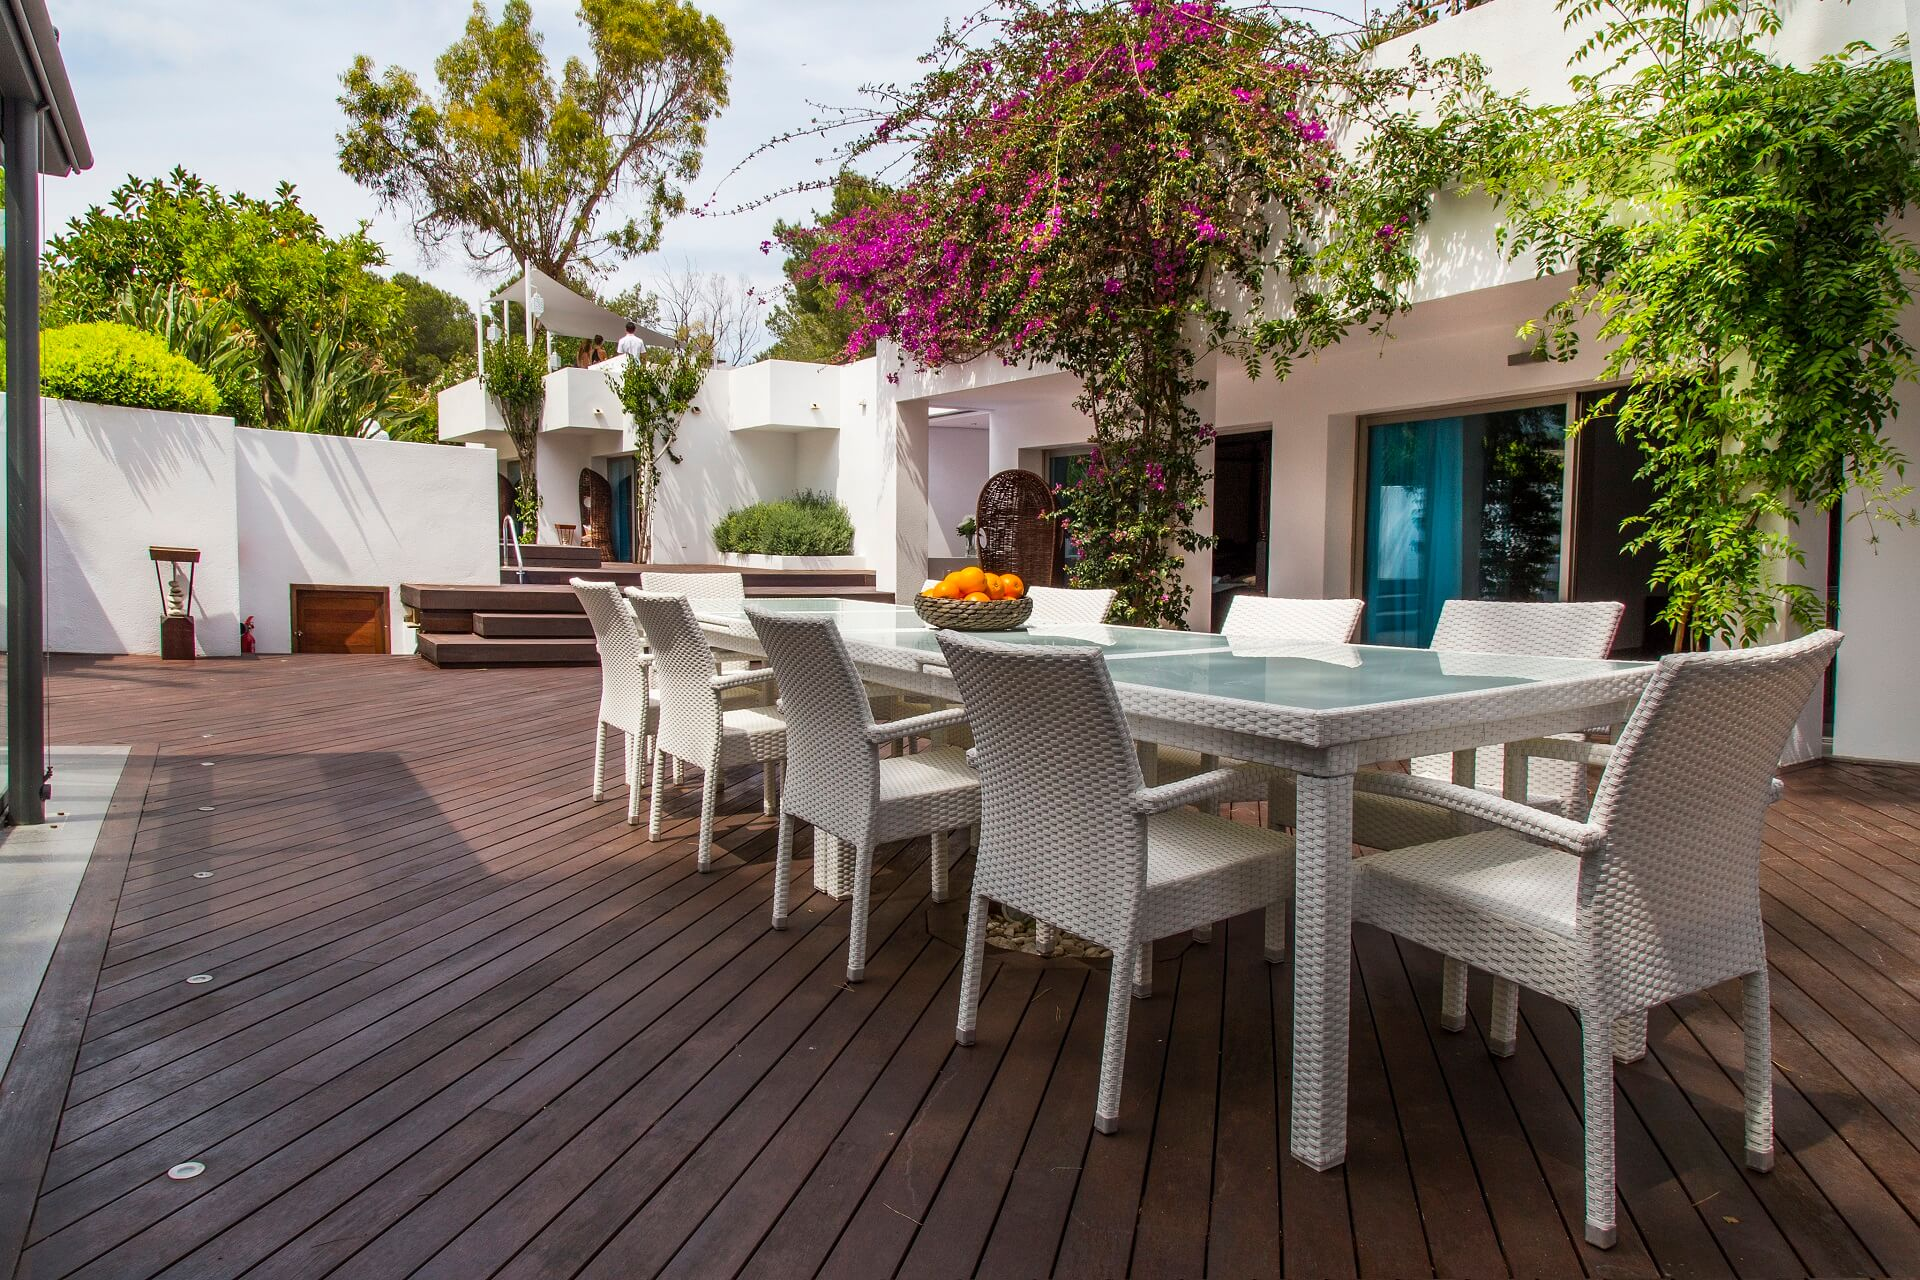 Casa India Ibiza - Outdoor dining area